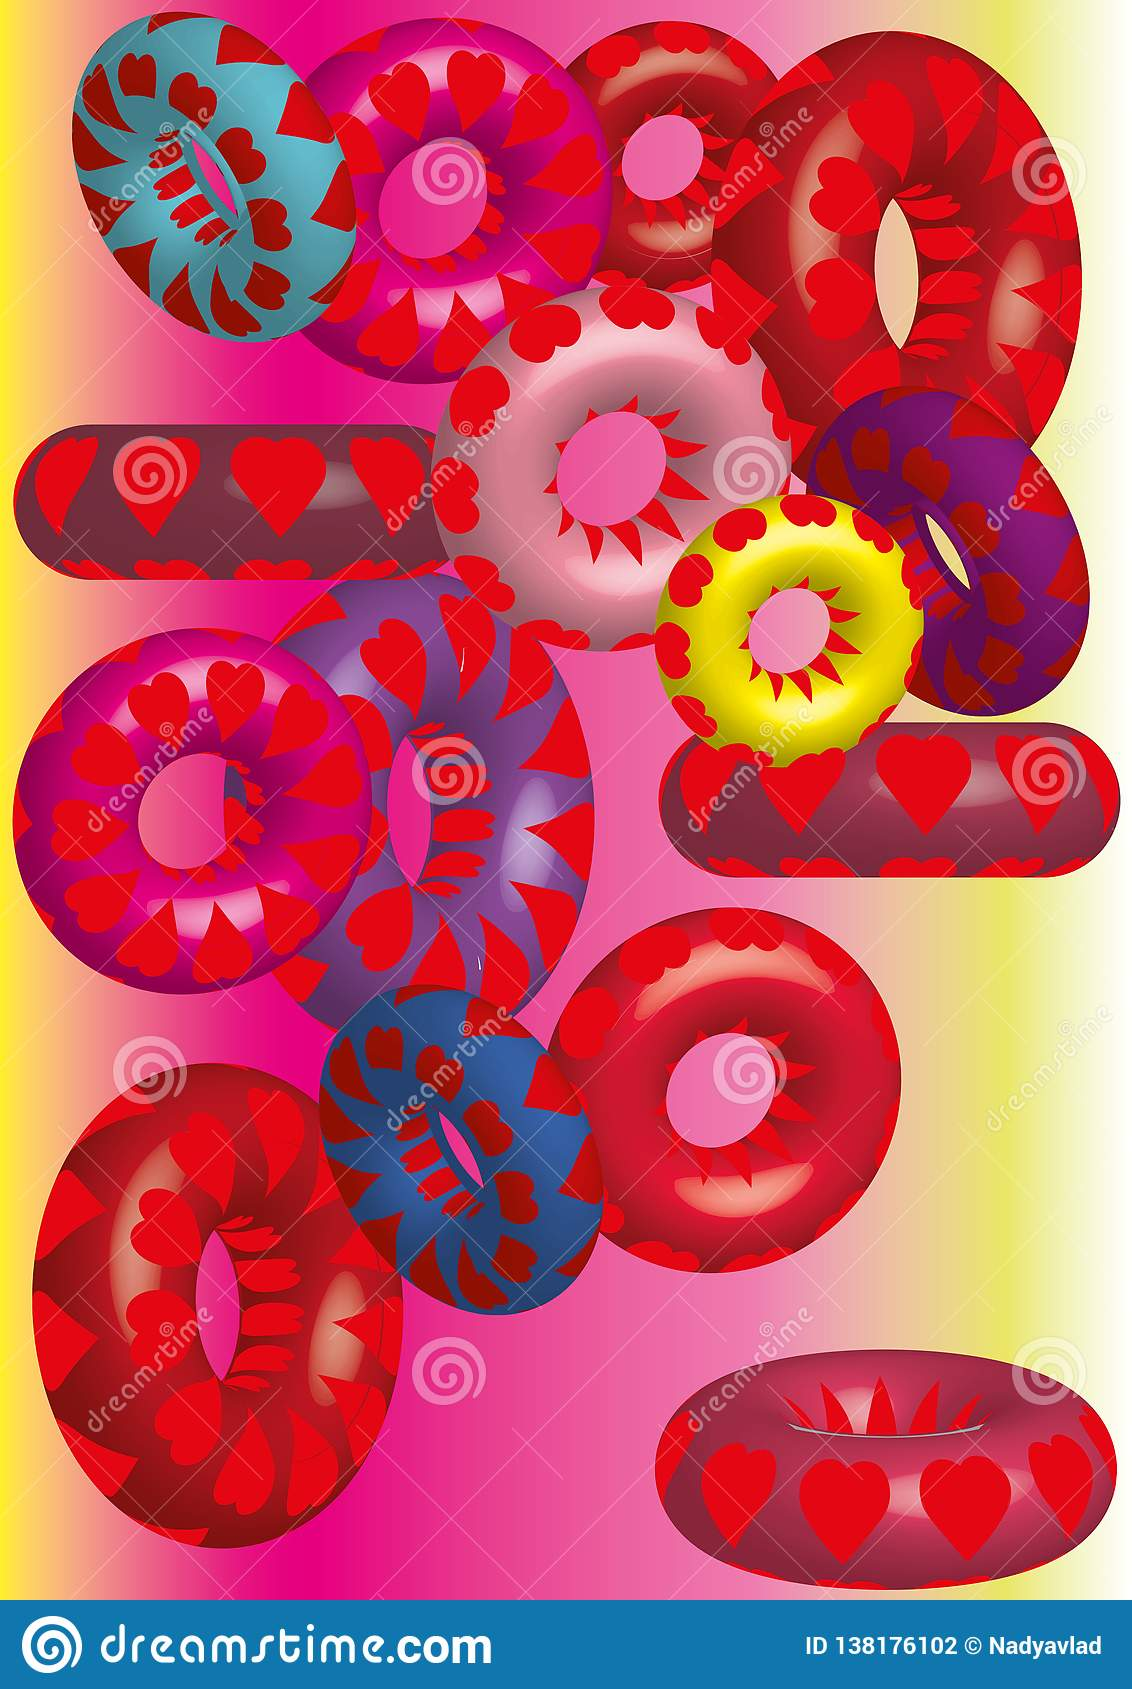 Volumetric colored circles, texture of hearts